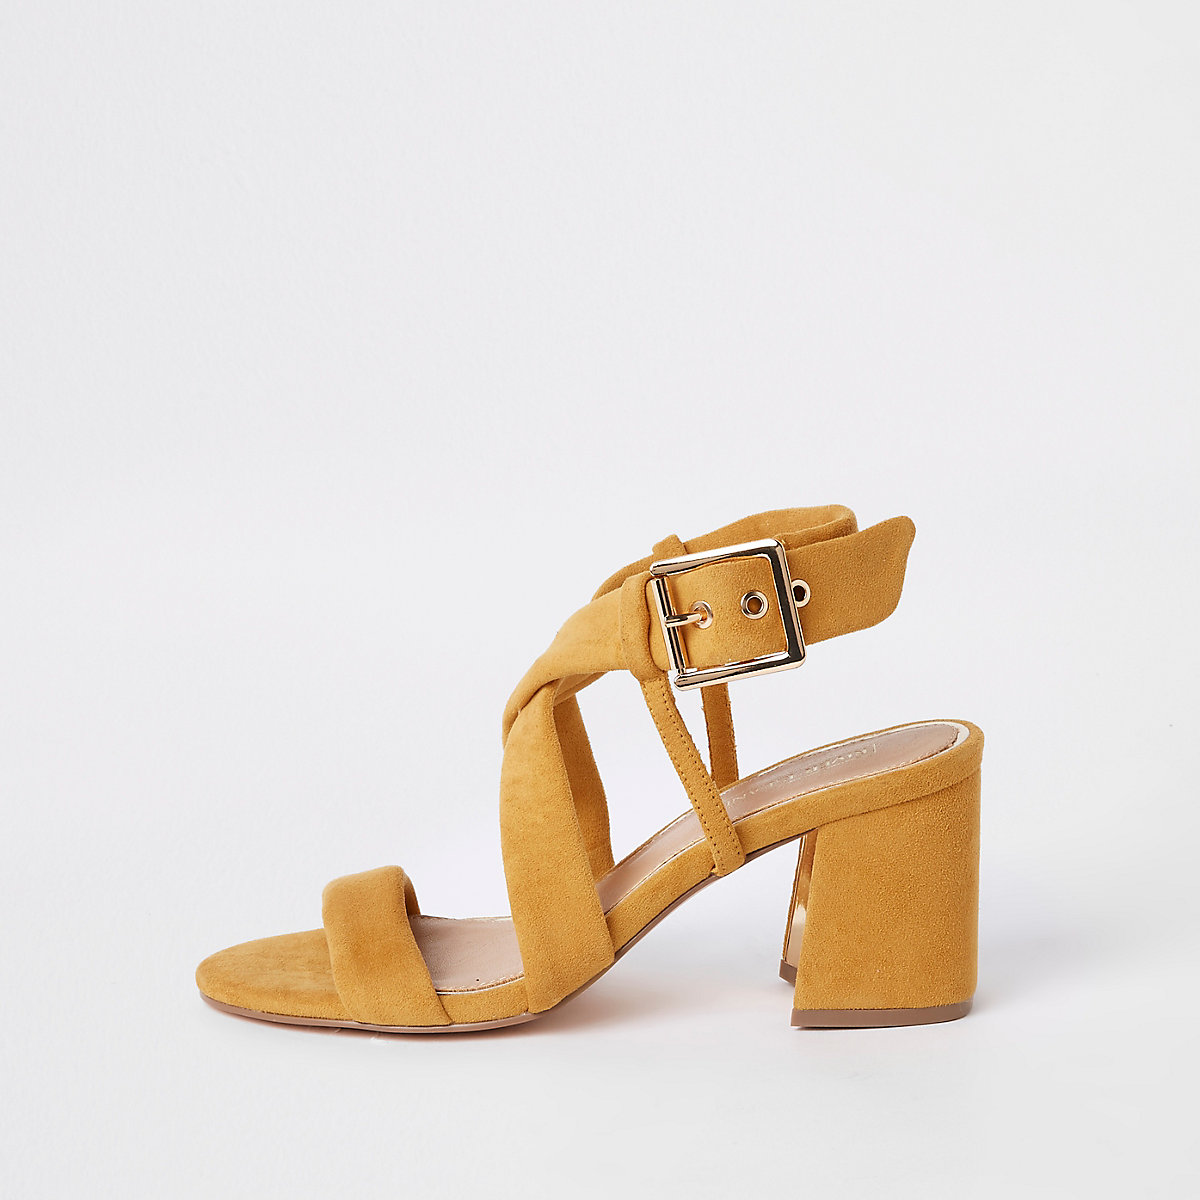 2510c155b47d Yellow tie strap block heel sandals - Sandals - Shoes   Boots - women